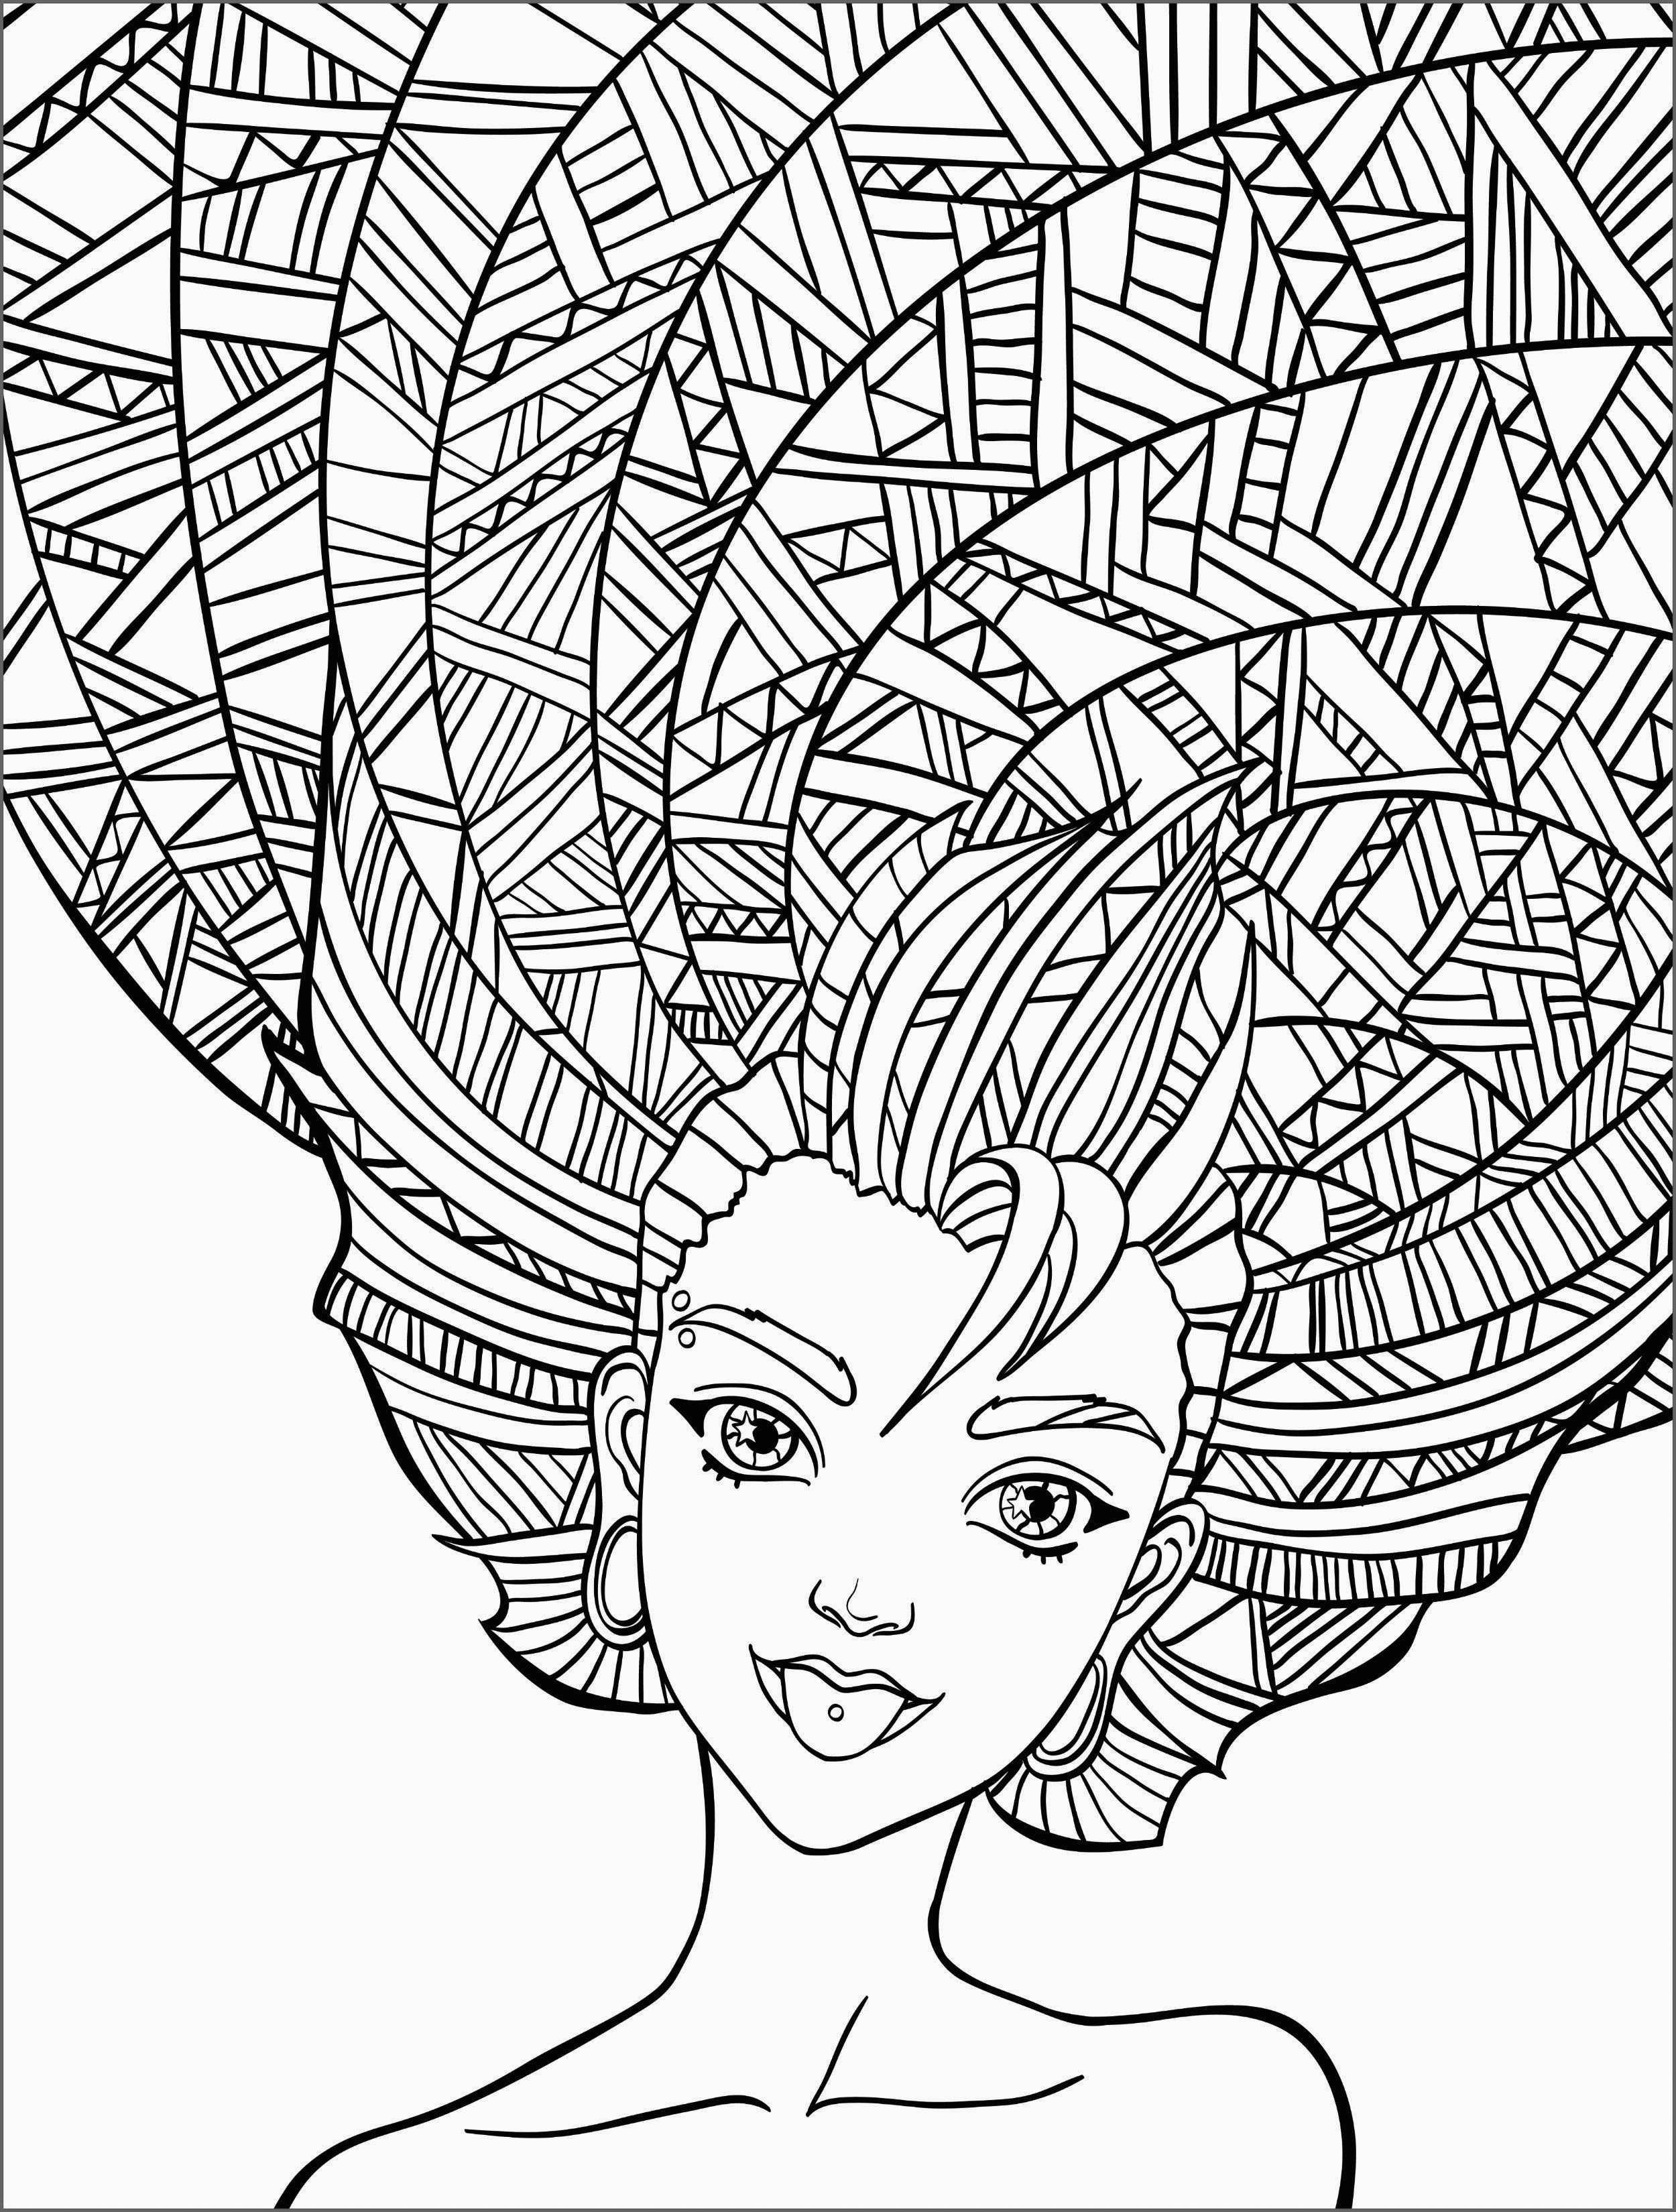 colouring in pages for teenagers coloring pages for adults best coloring pages for kids colouring in for pages teenagers